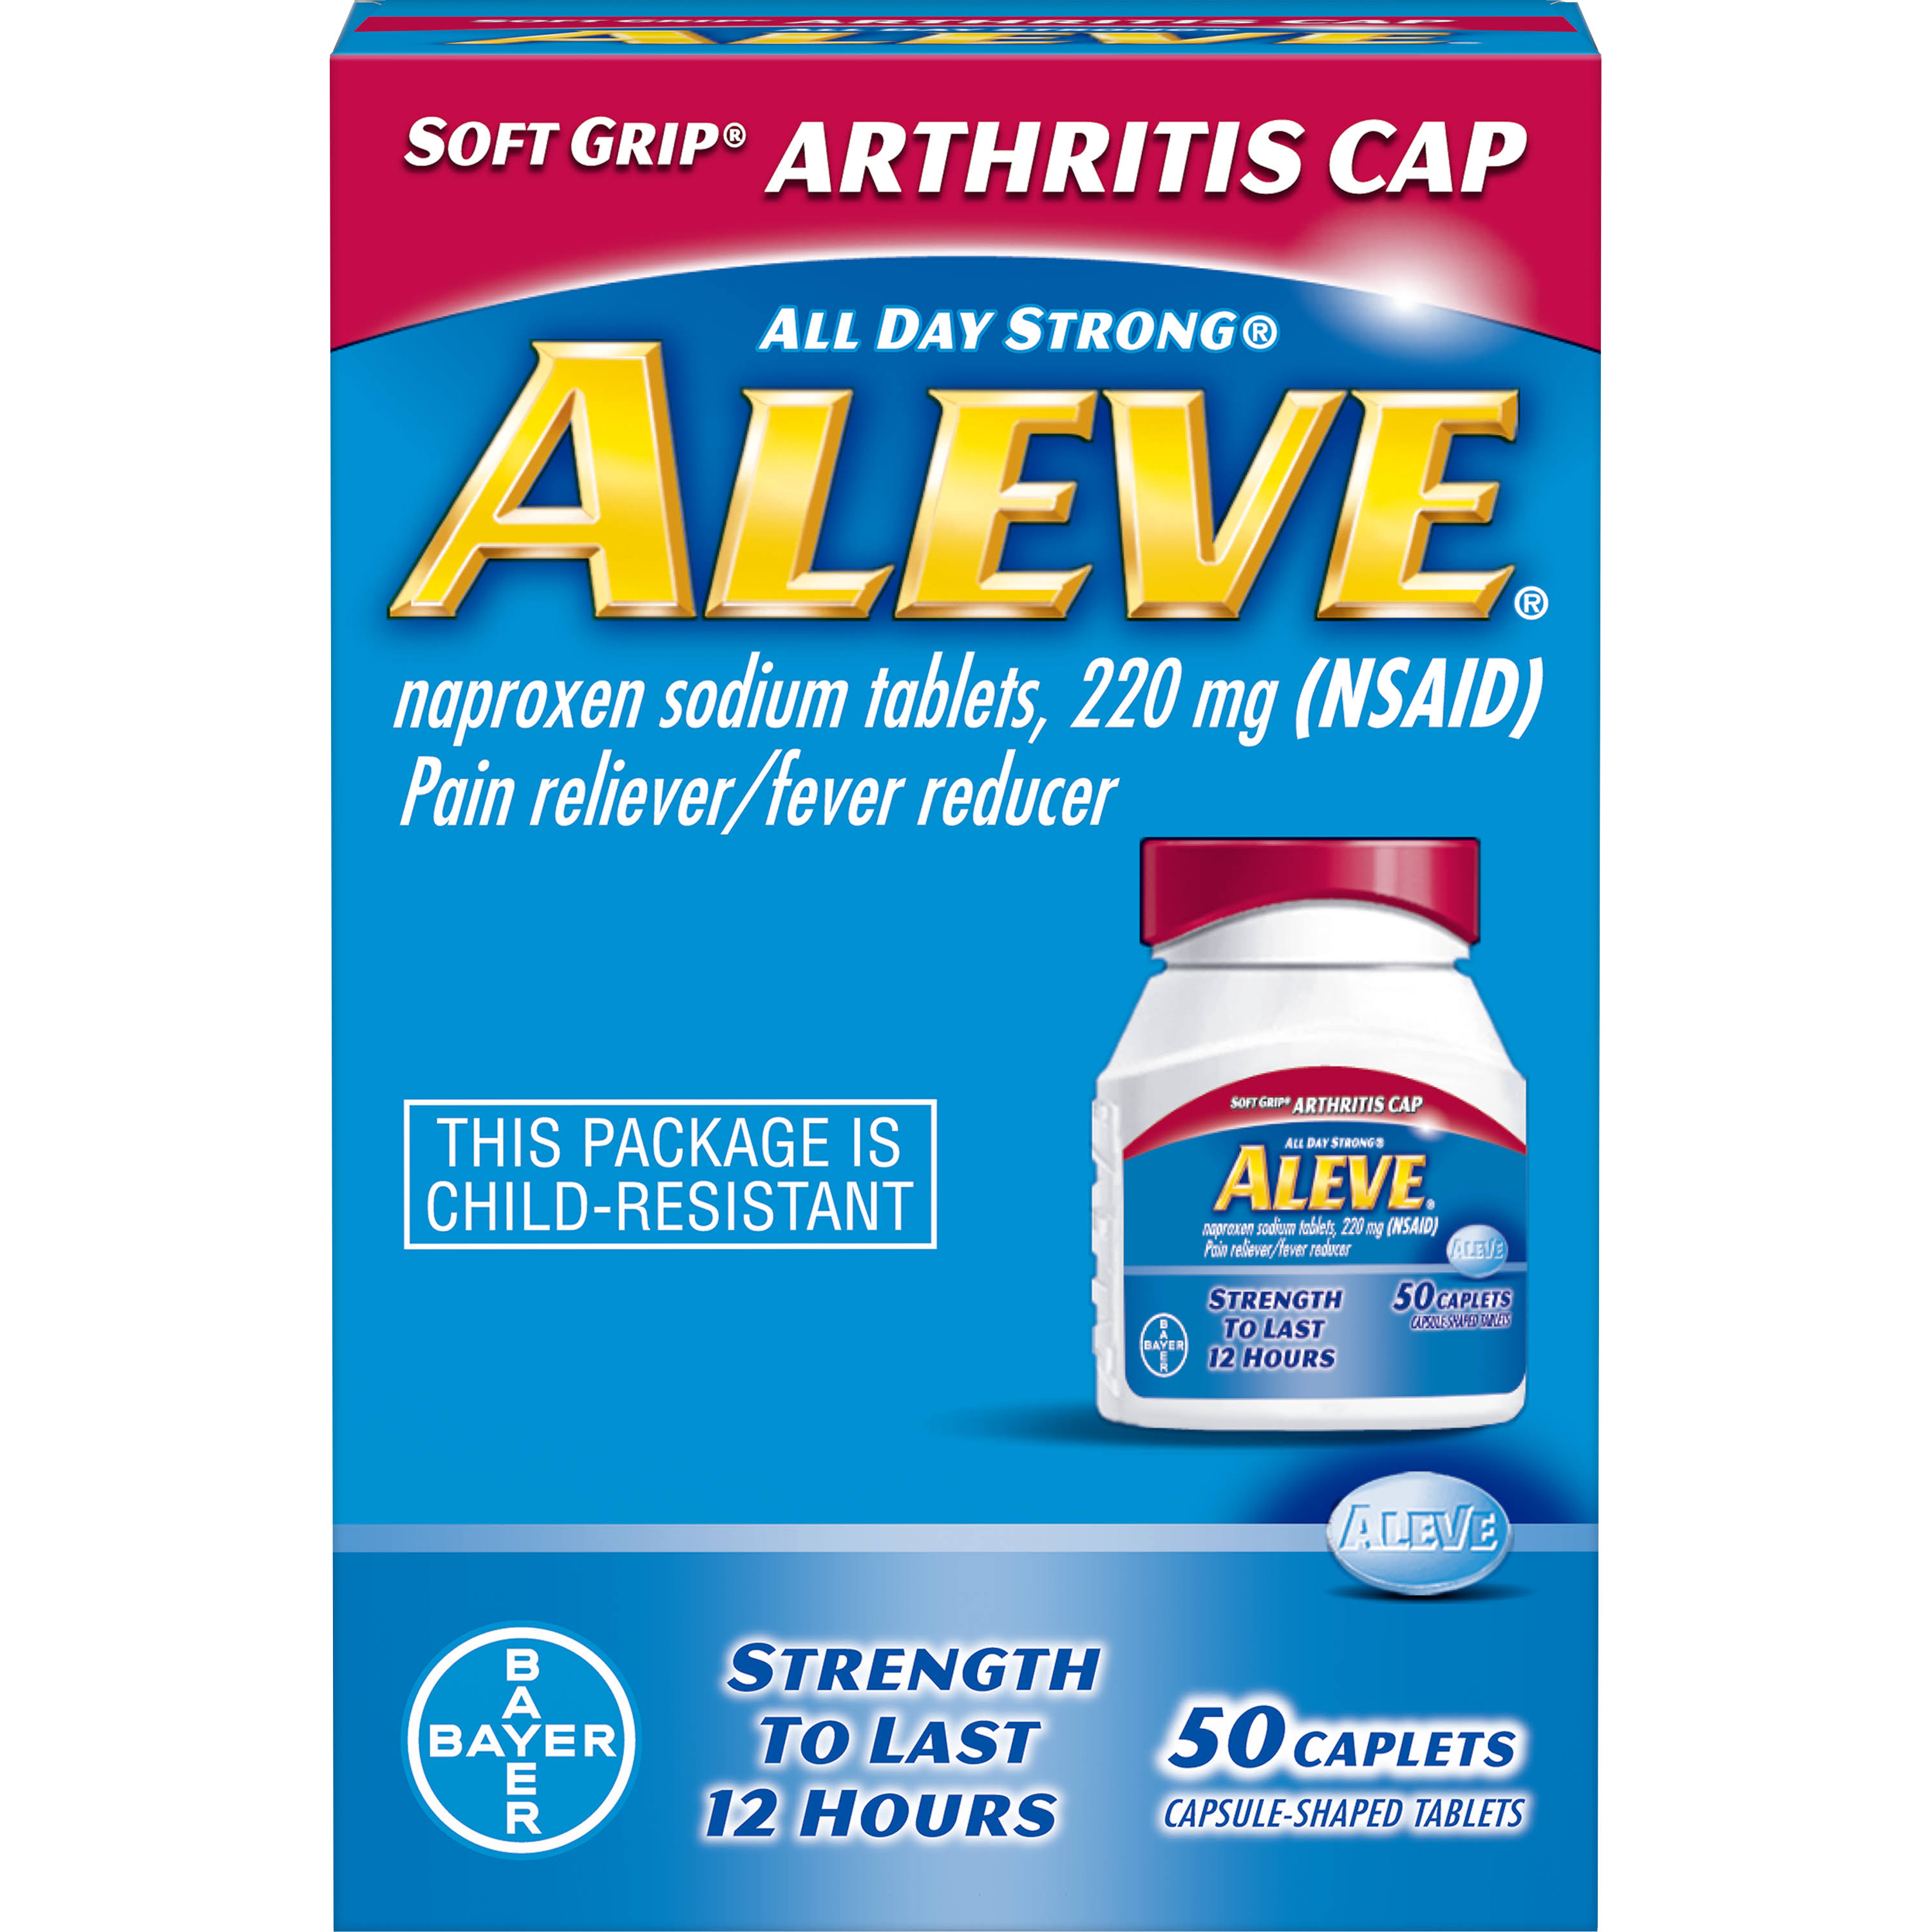 Bayer Aleve All Day Strong Pain Reliever & Fever Reducer - 50 Caplets